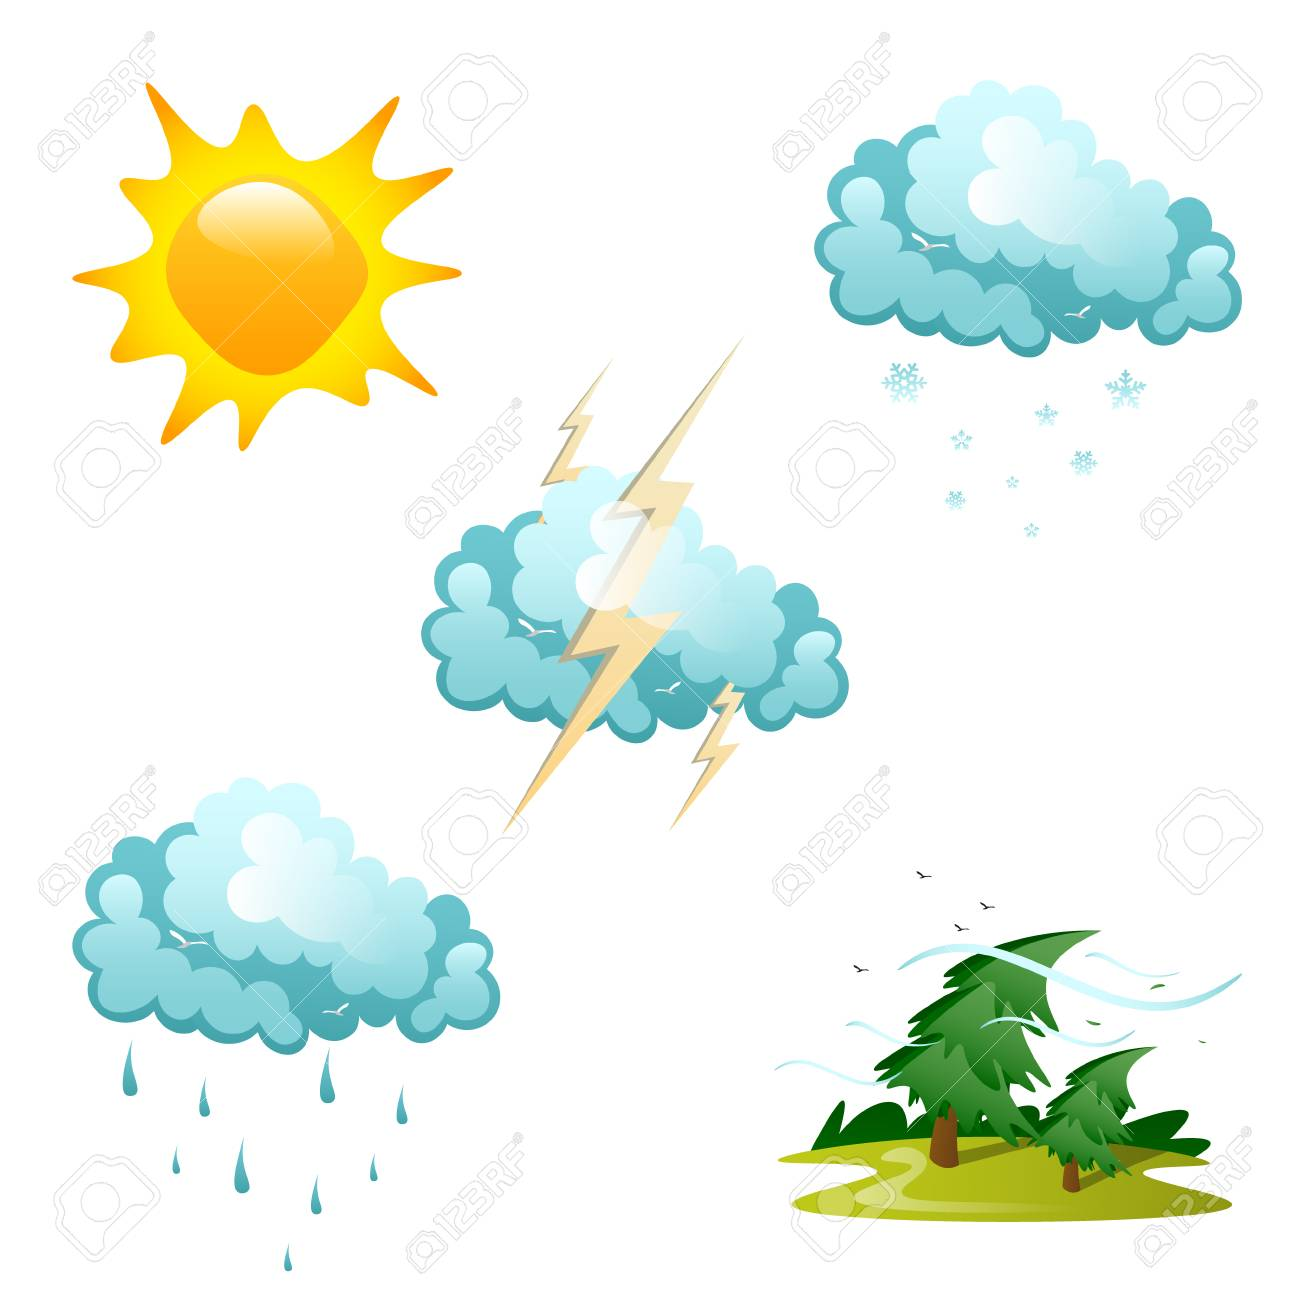 Set of different weather icons vector illustration. - 90317269